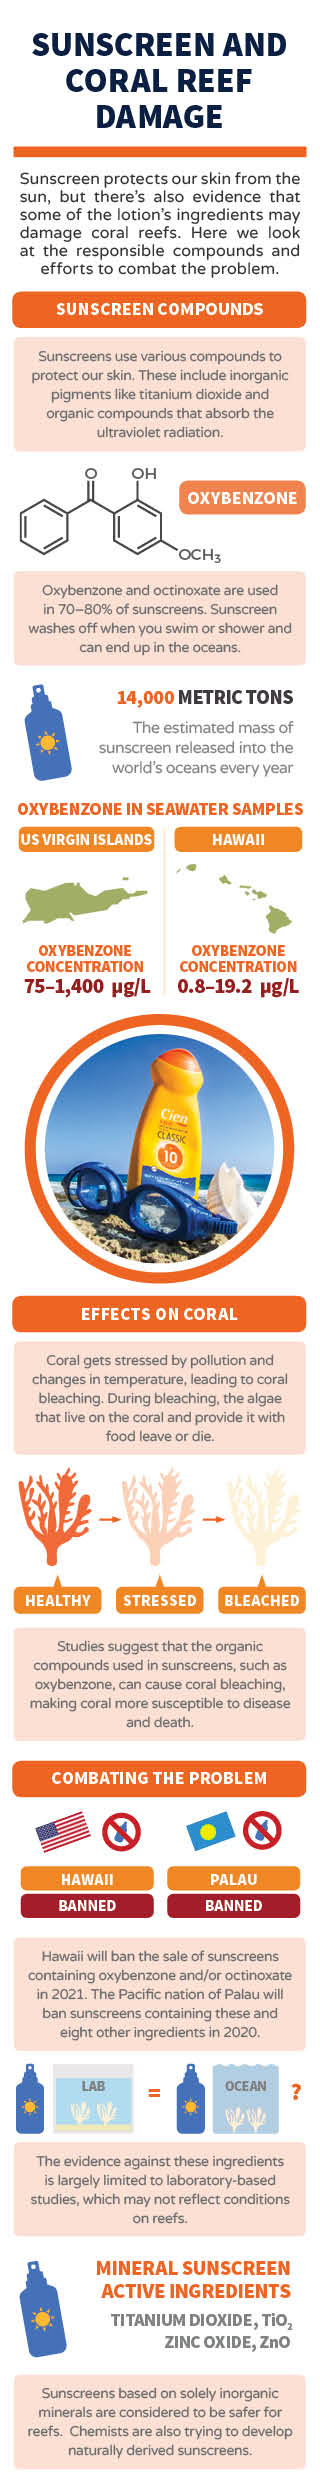 Periodic Graphics: Sunscreen and coral reef damage